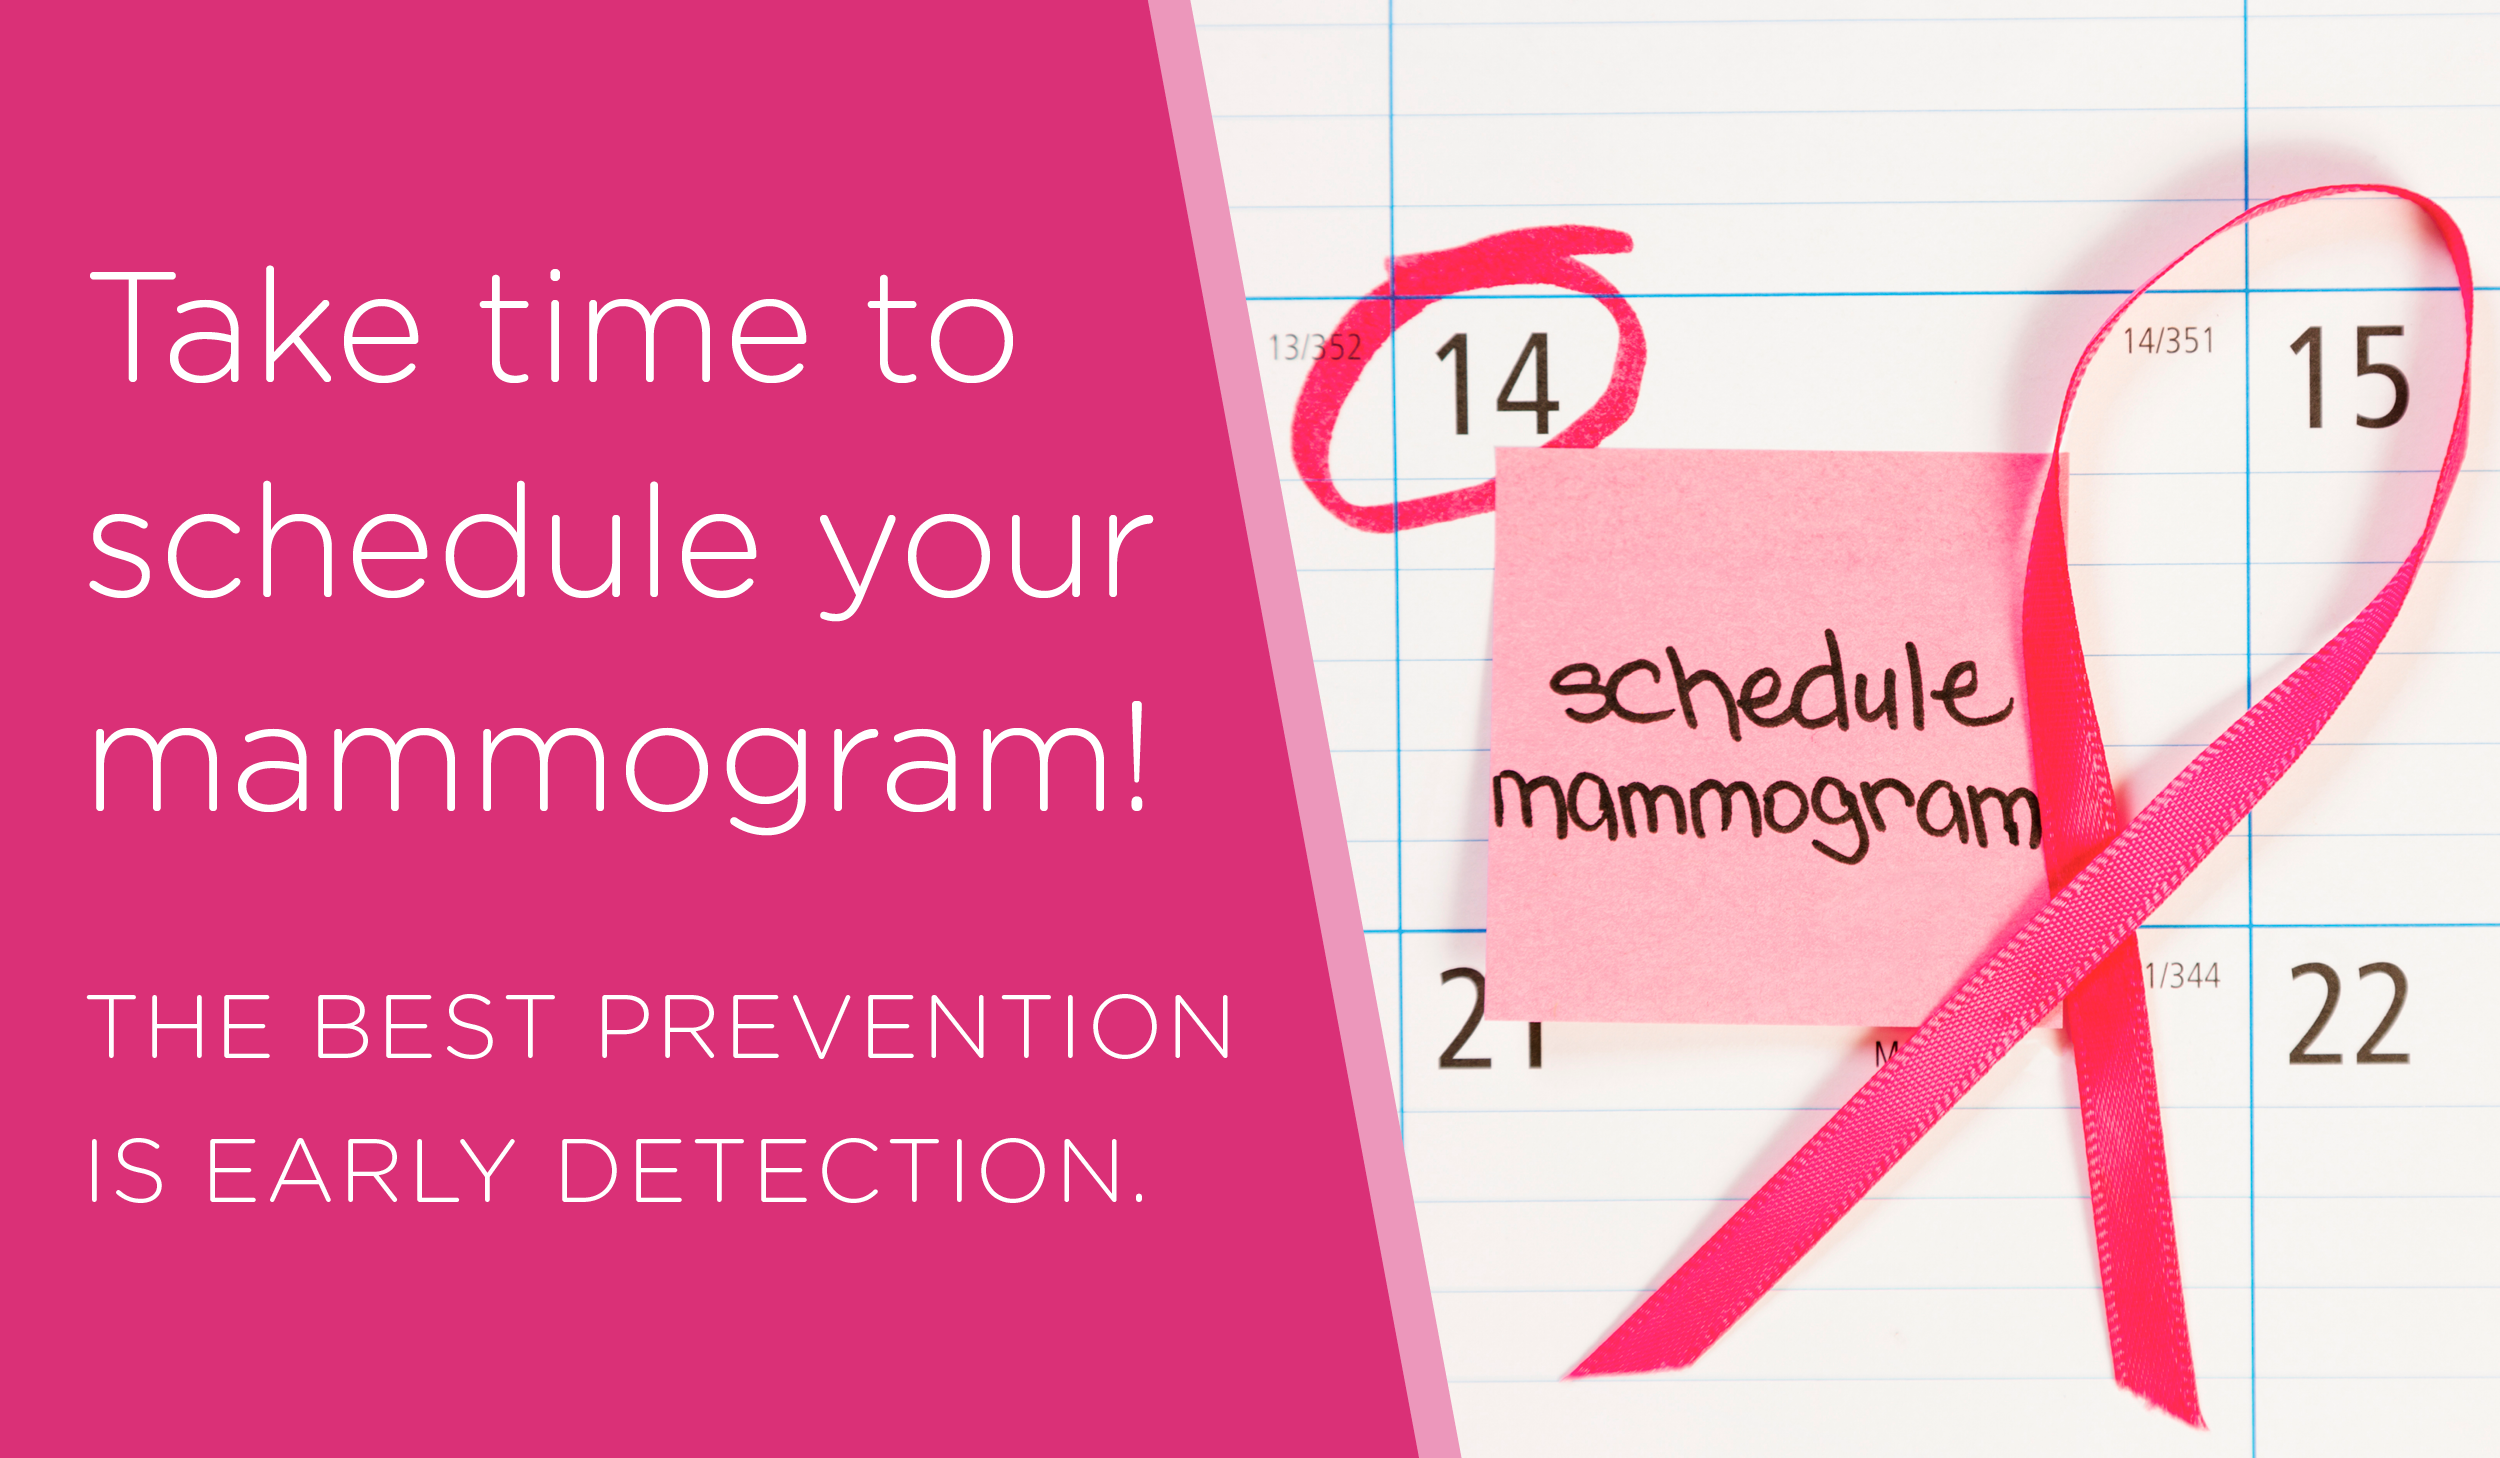 Take time to schedule your mammogram!